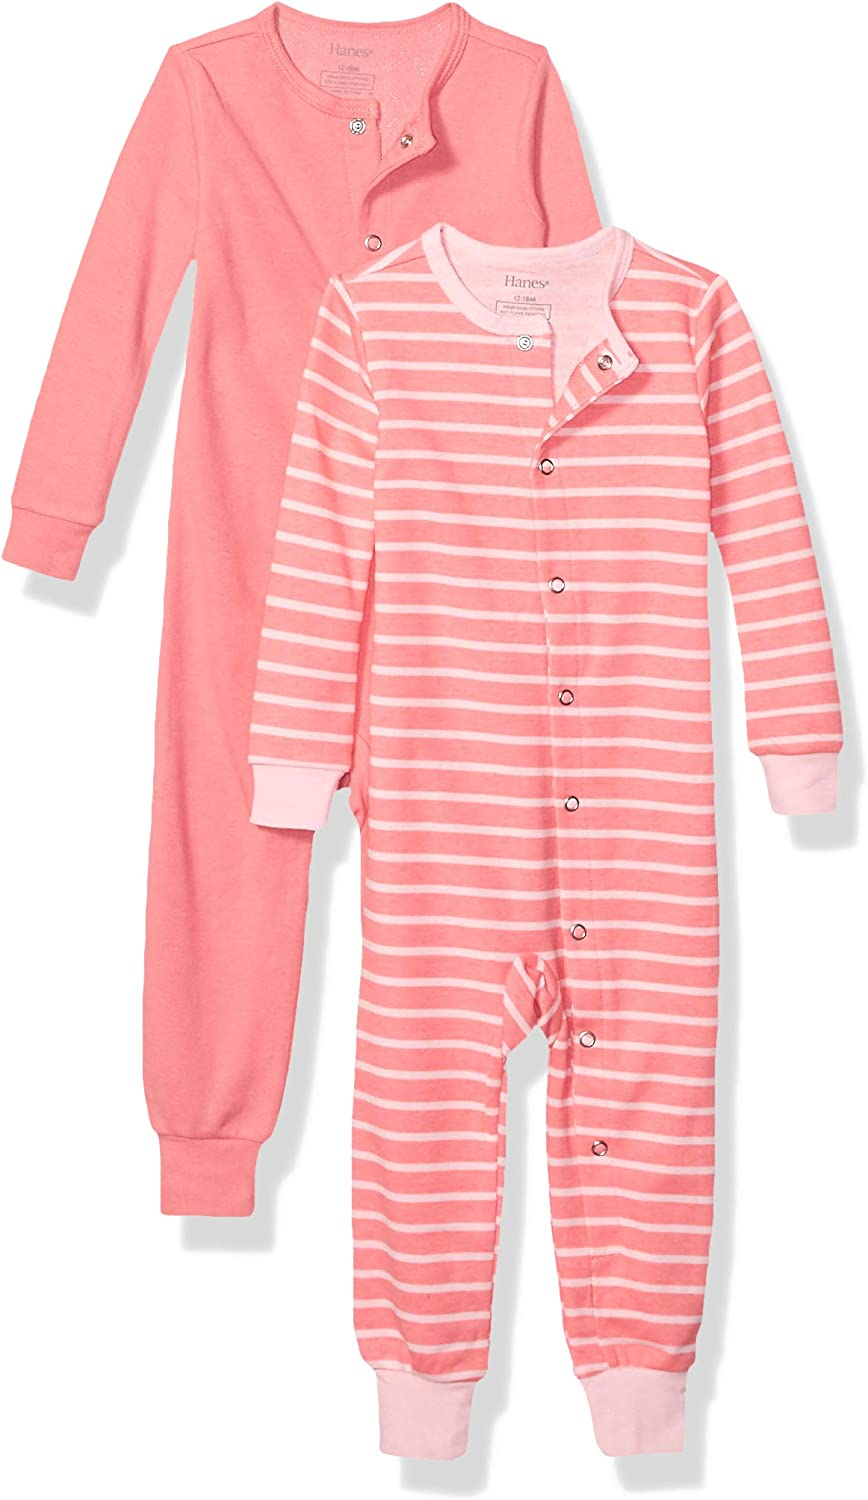 Hanes Ultimate Baby Zippin 2 Pack Sleep and Play Suits 18-24 Months Grey//Pink Stripe